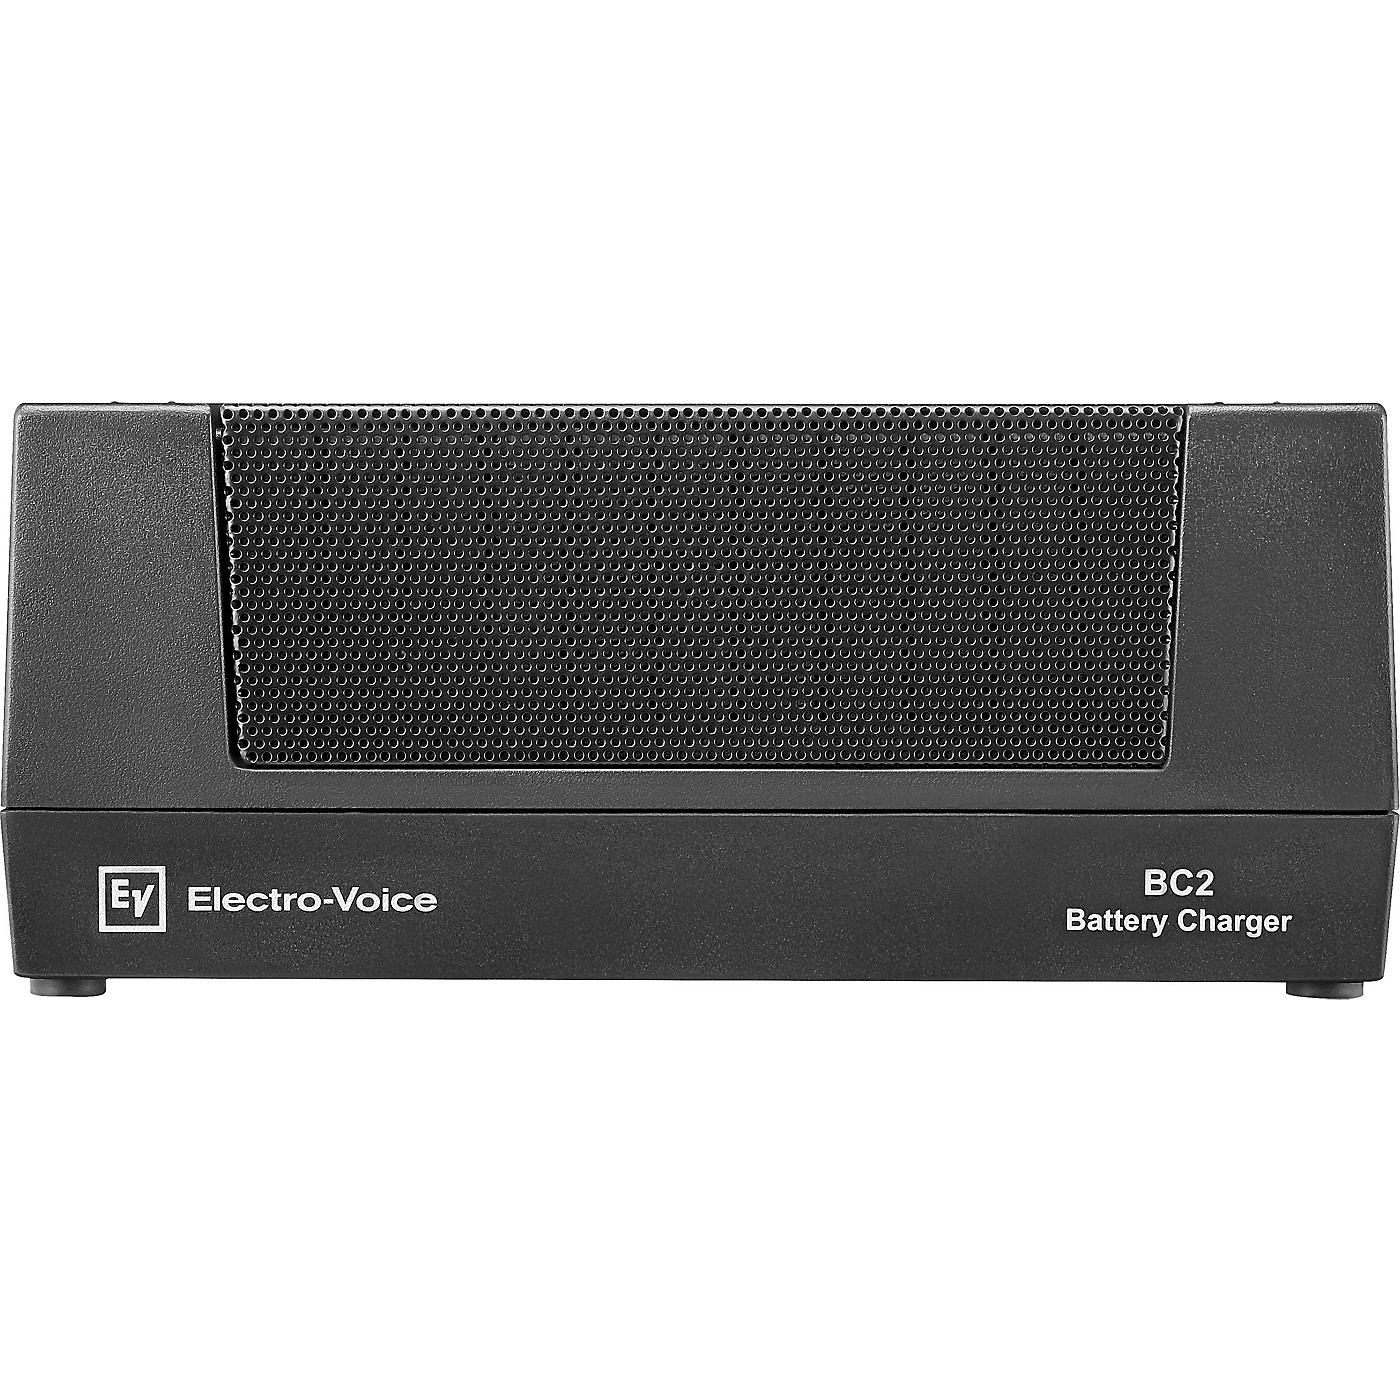 Electro-Voice Two slot battery charger thumbnail